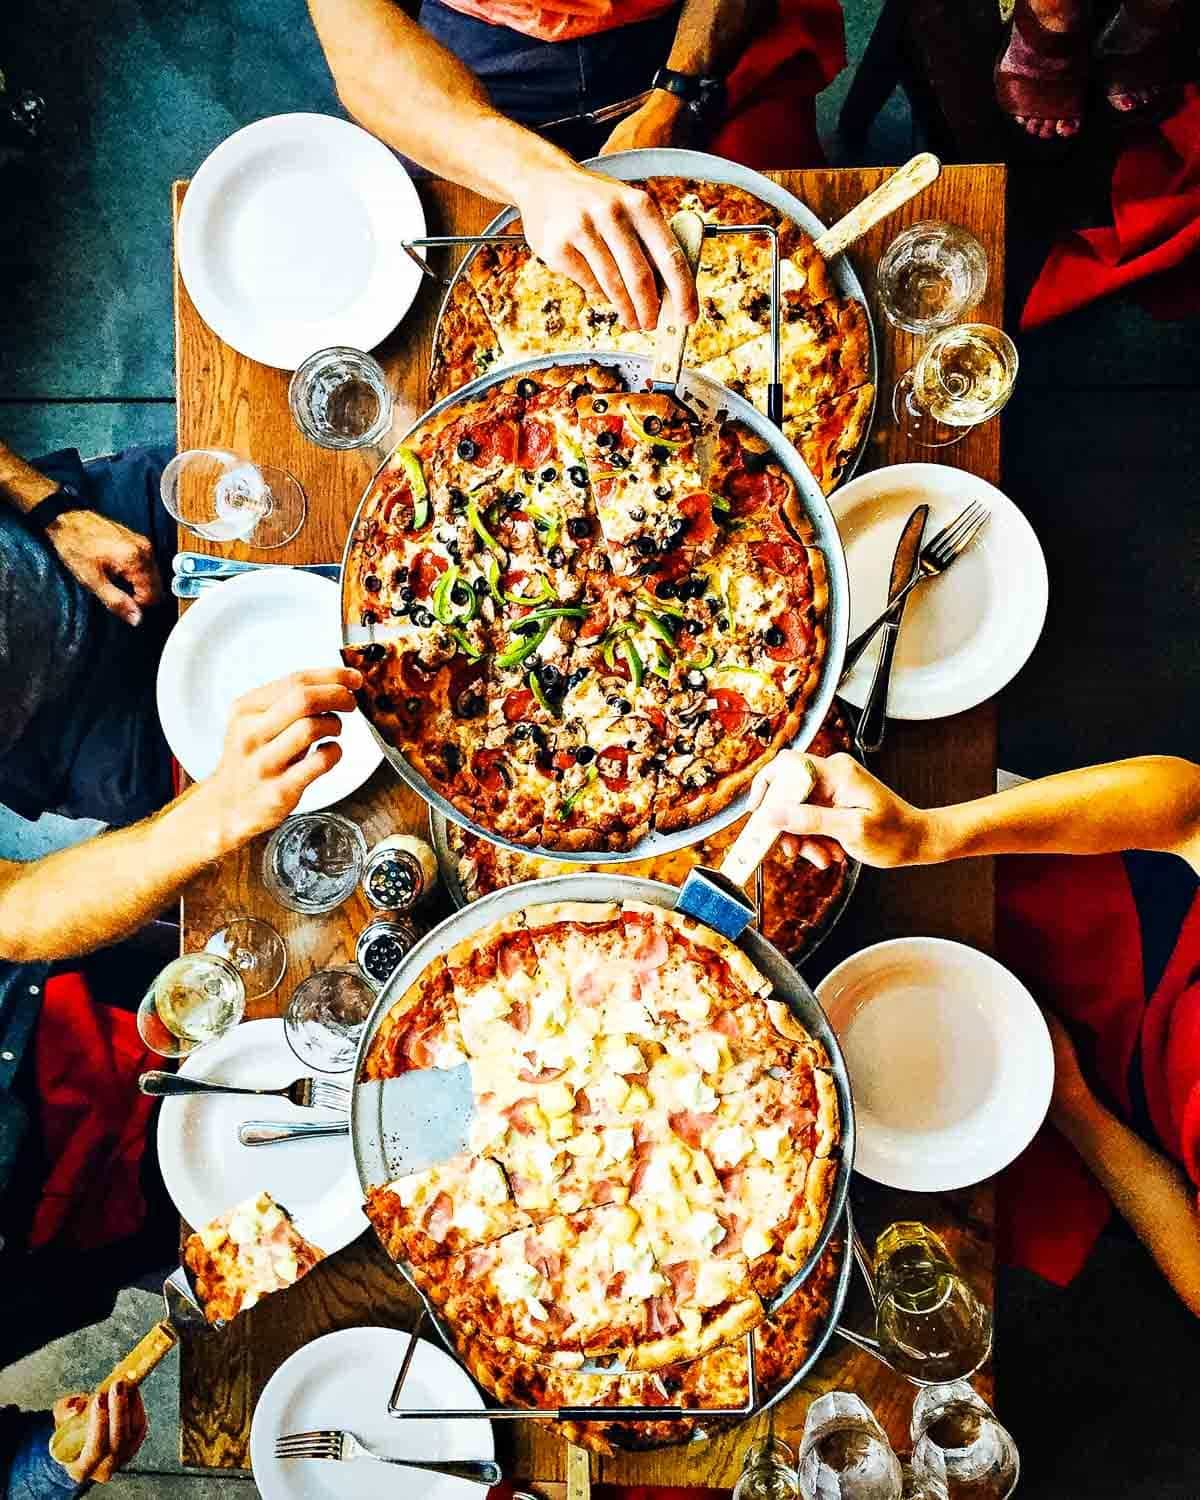 BOGO Pizza Night at Pizzaman